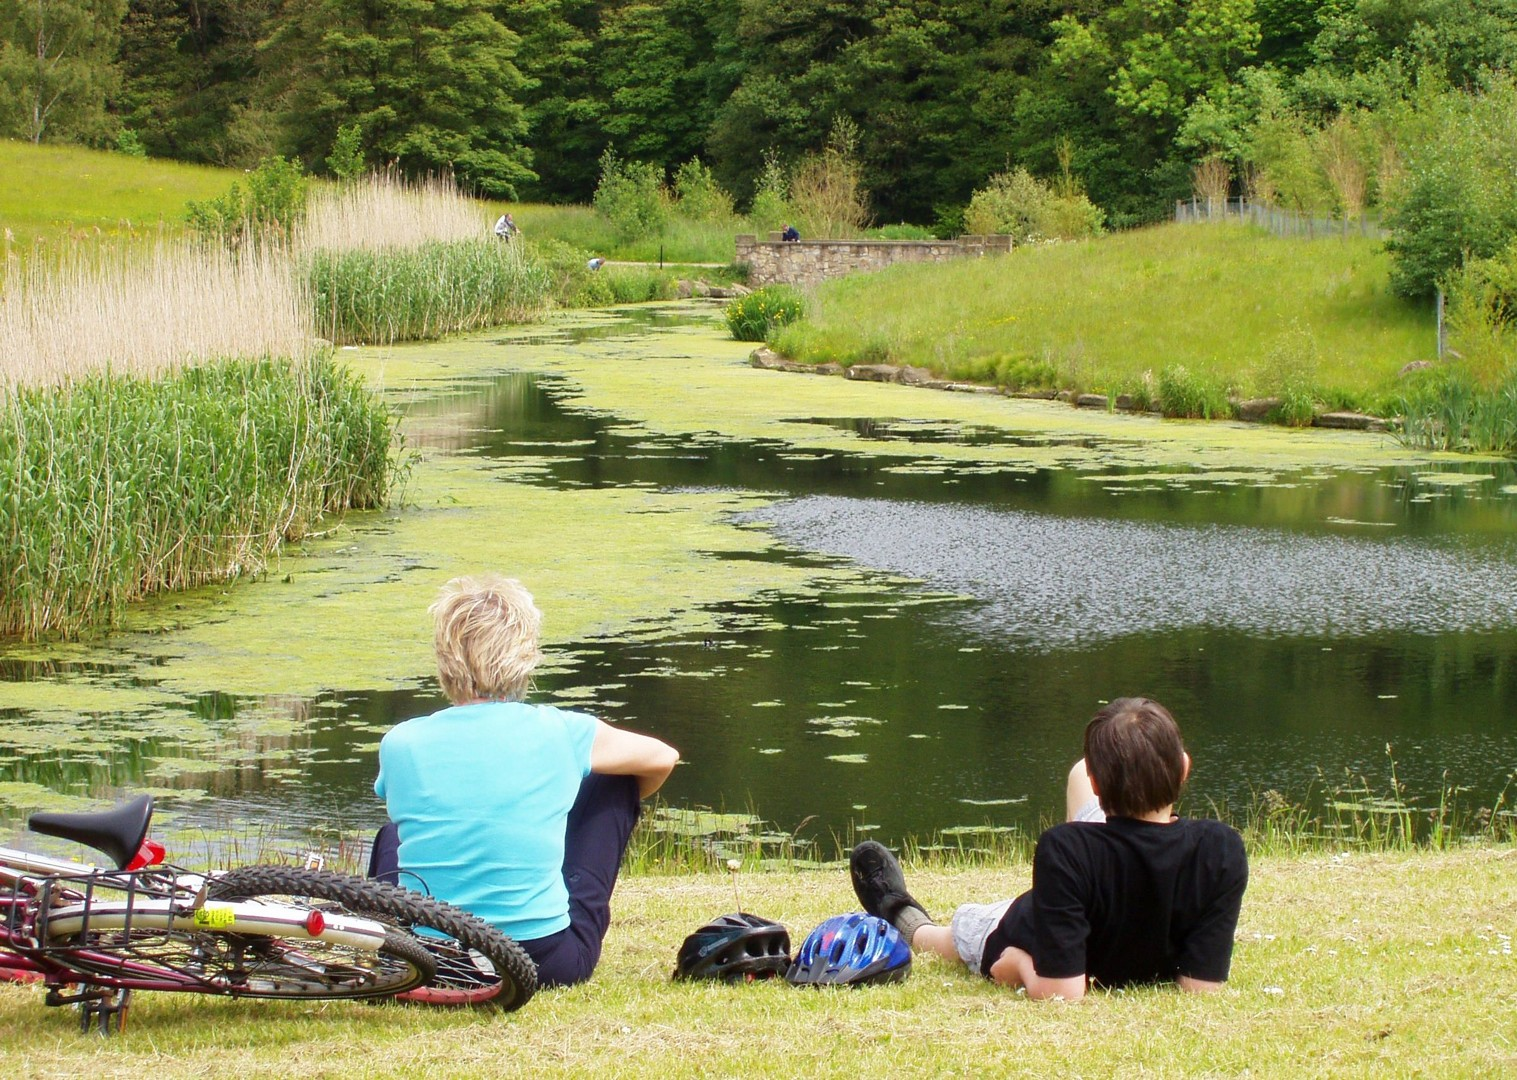 relax-pond-country-cycling-hadrians-cycleway.jpg - UK - Hadrian's Cycleway - 6 Days - Family Cycling